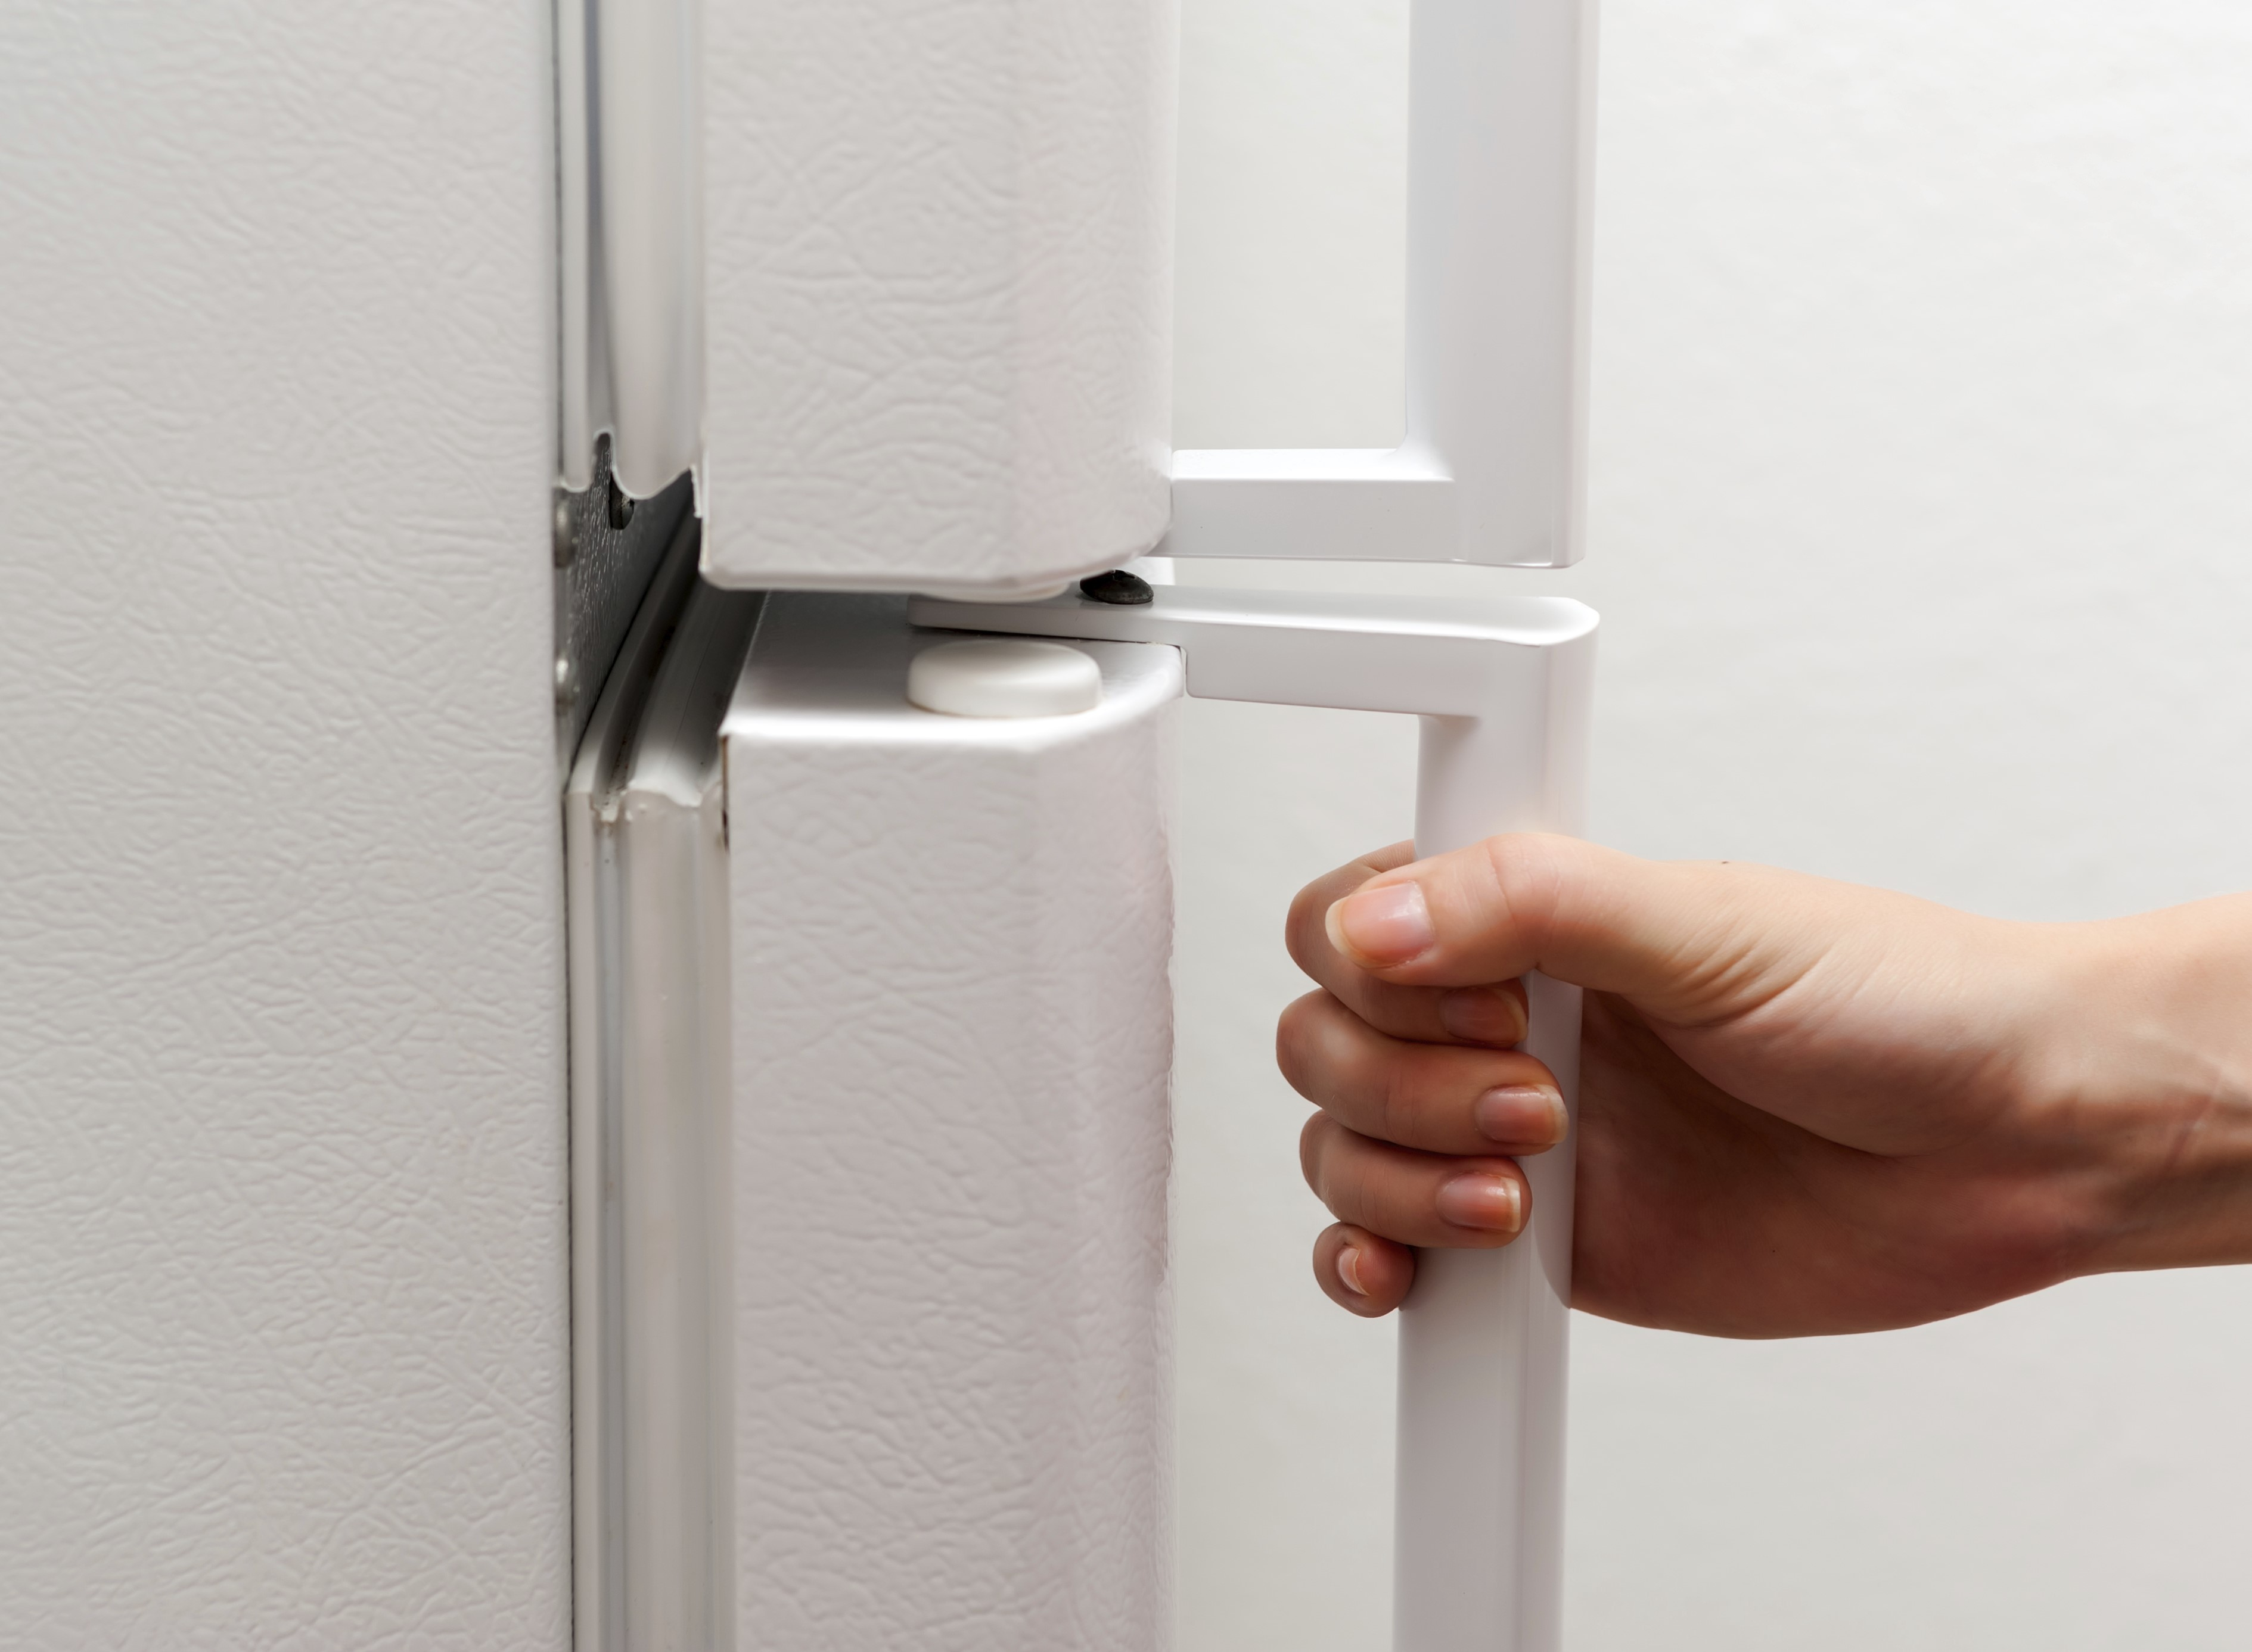 How To Keep The Refrigerator Door Closed Speedy